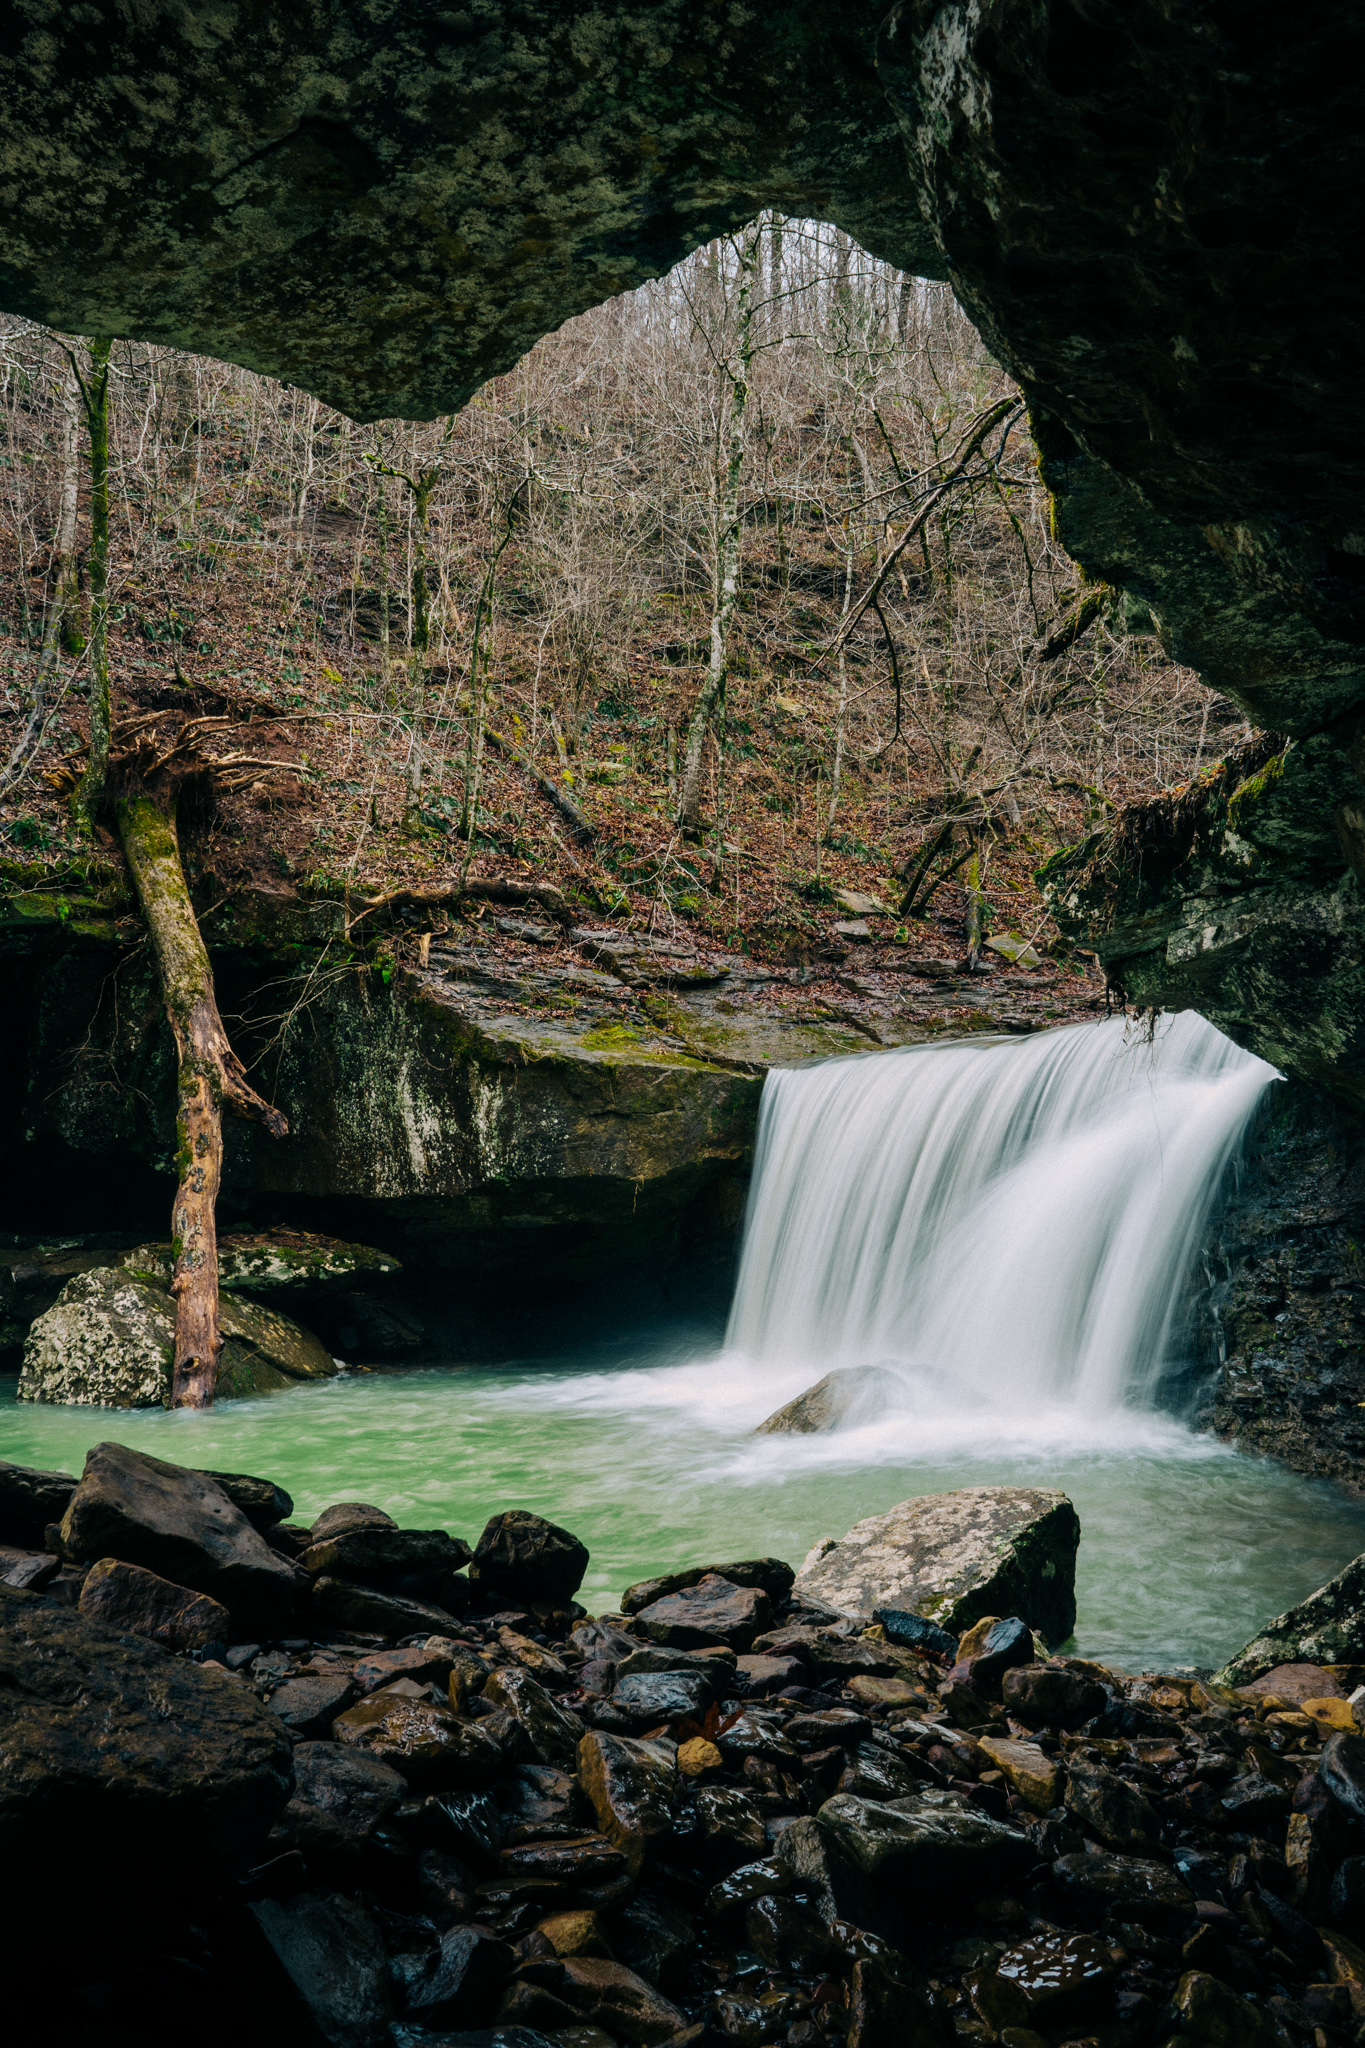 Hamilton Falls in the Richland Creek Wilderness